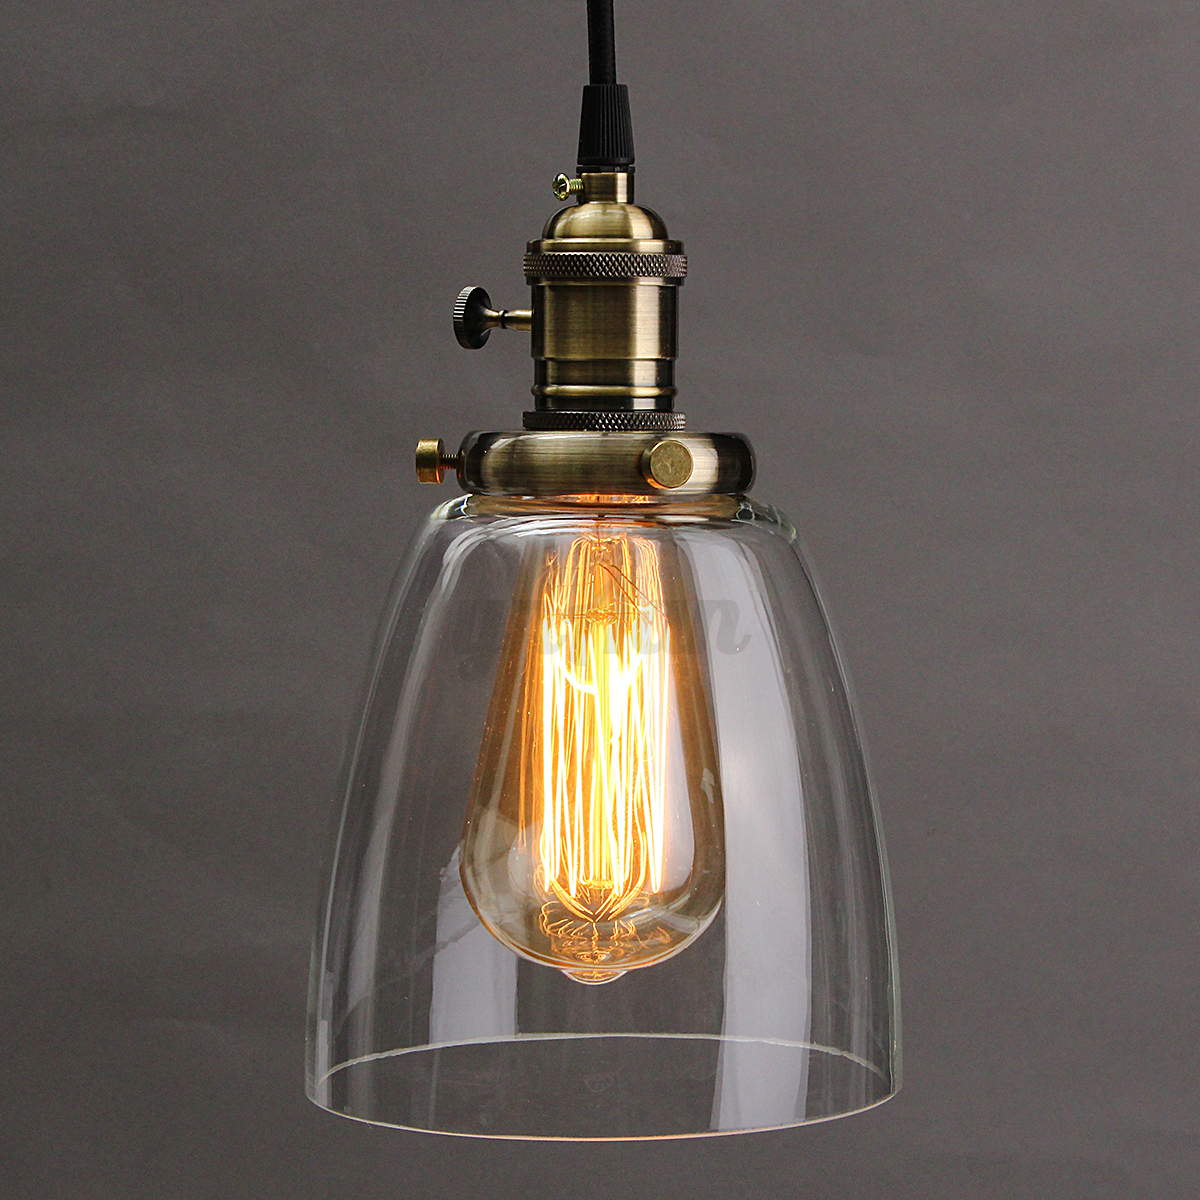 vintage industrial coffee house glass cover ceiling lamp light lampshade fixture ebay. Black Bedroom Furniture Sets. Home Design Ideas